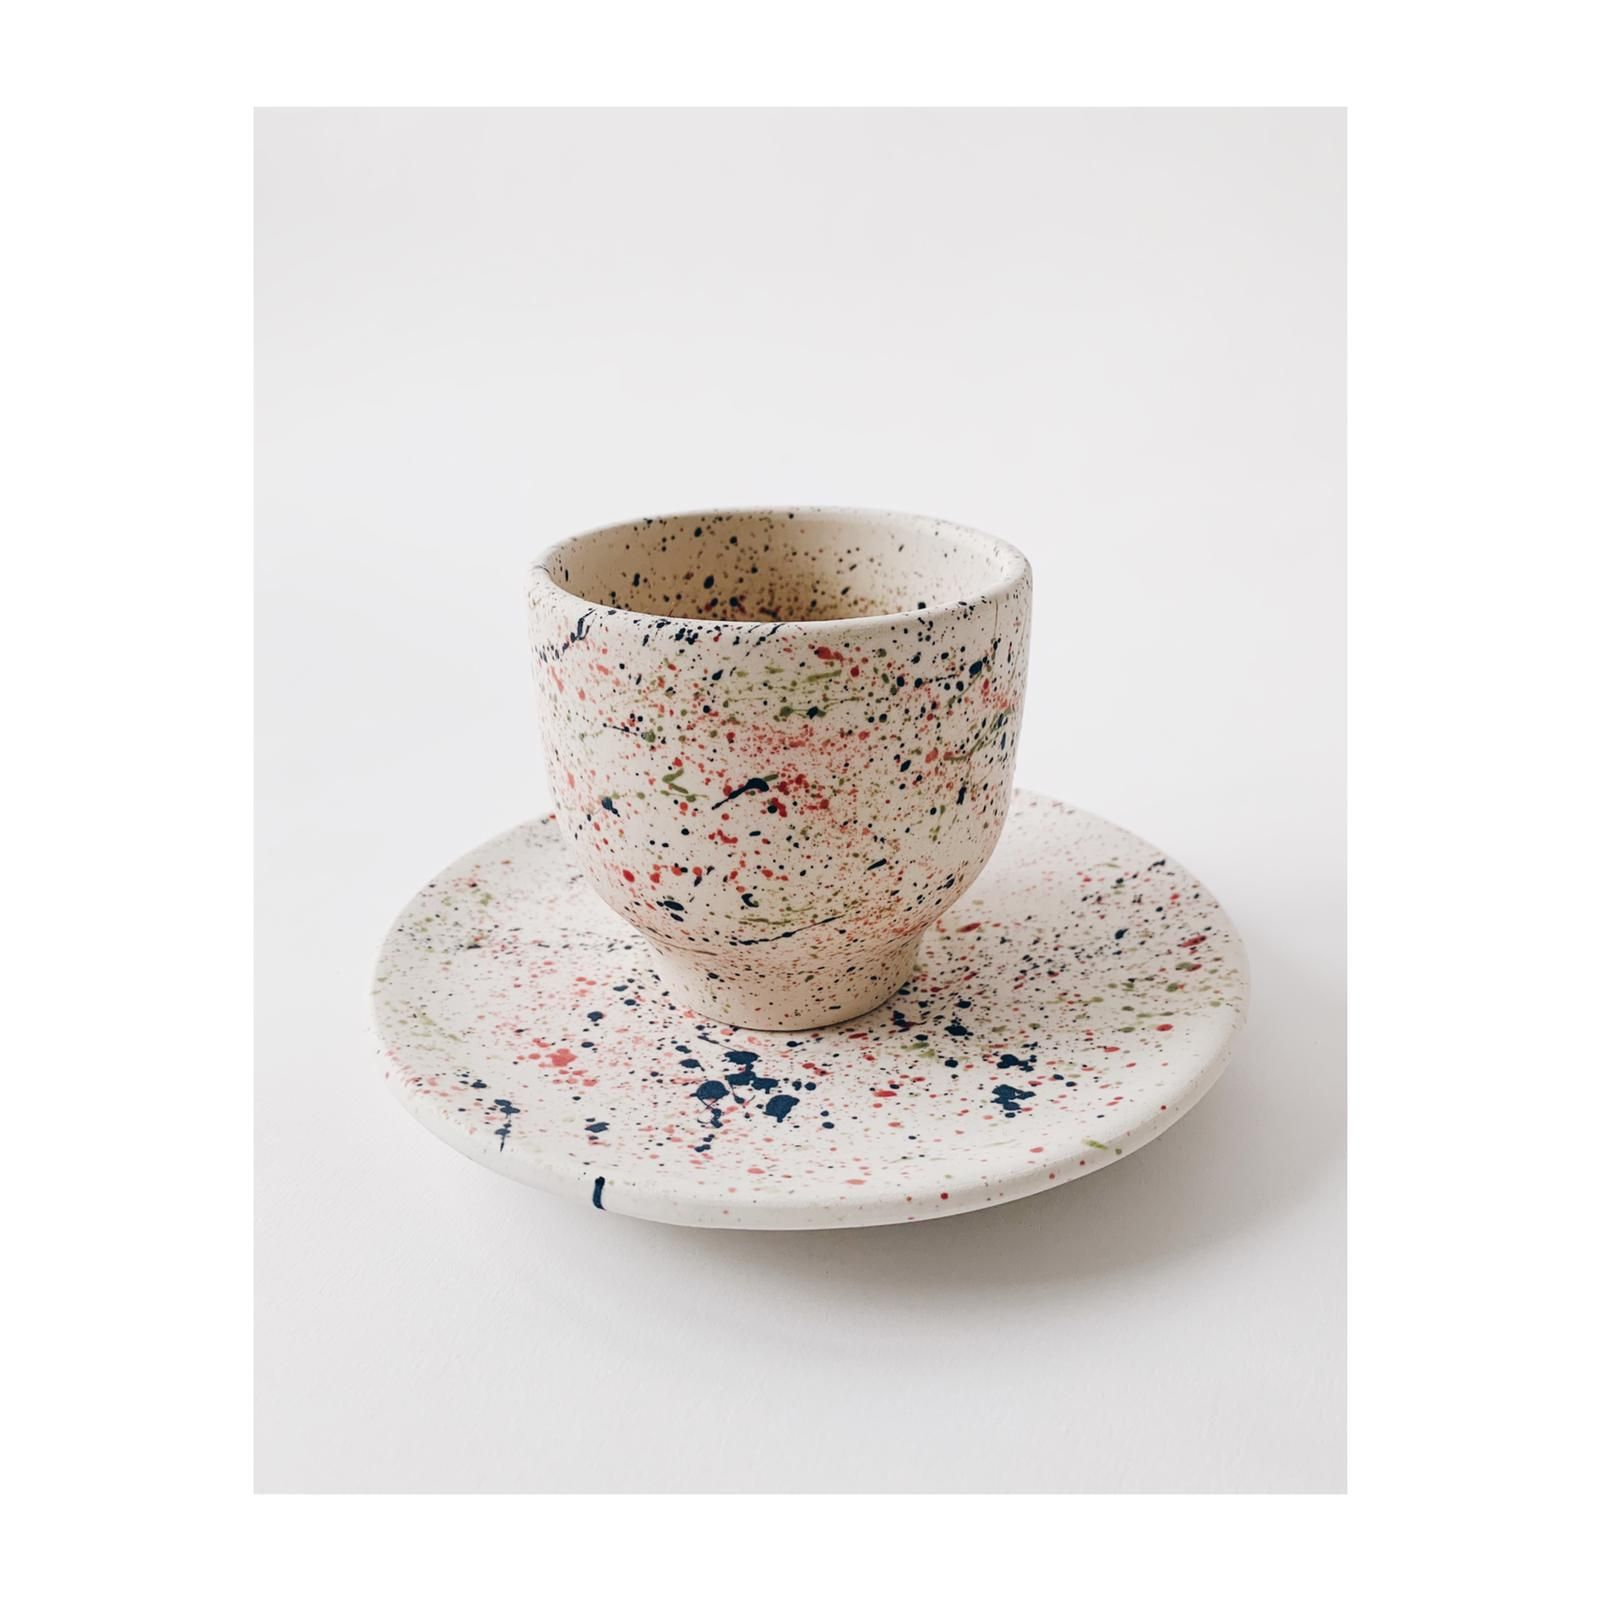 Pin By Croatia In Your Pocket On Zagreb In Your Pocket Tea Cups Tableware Glassware